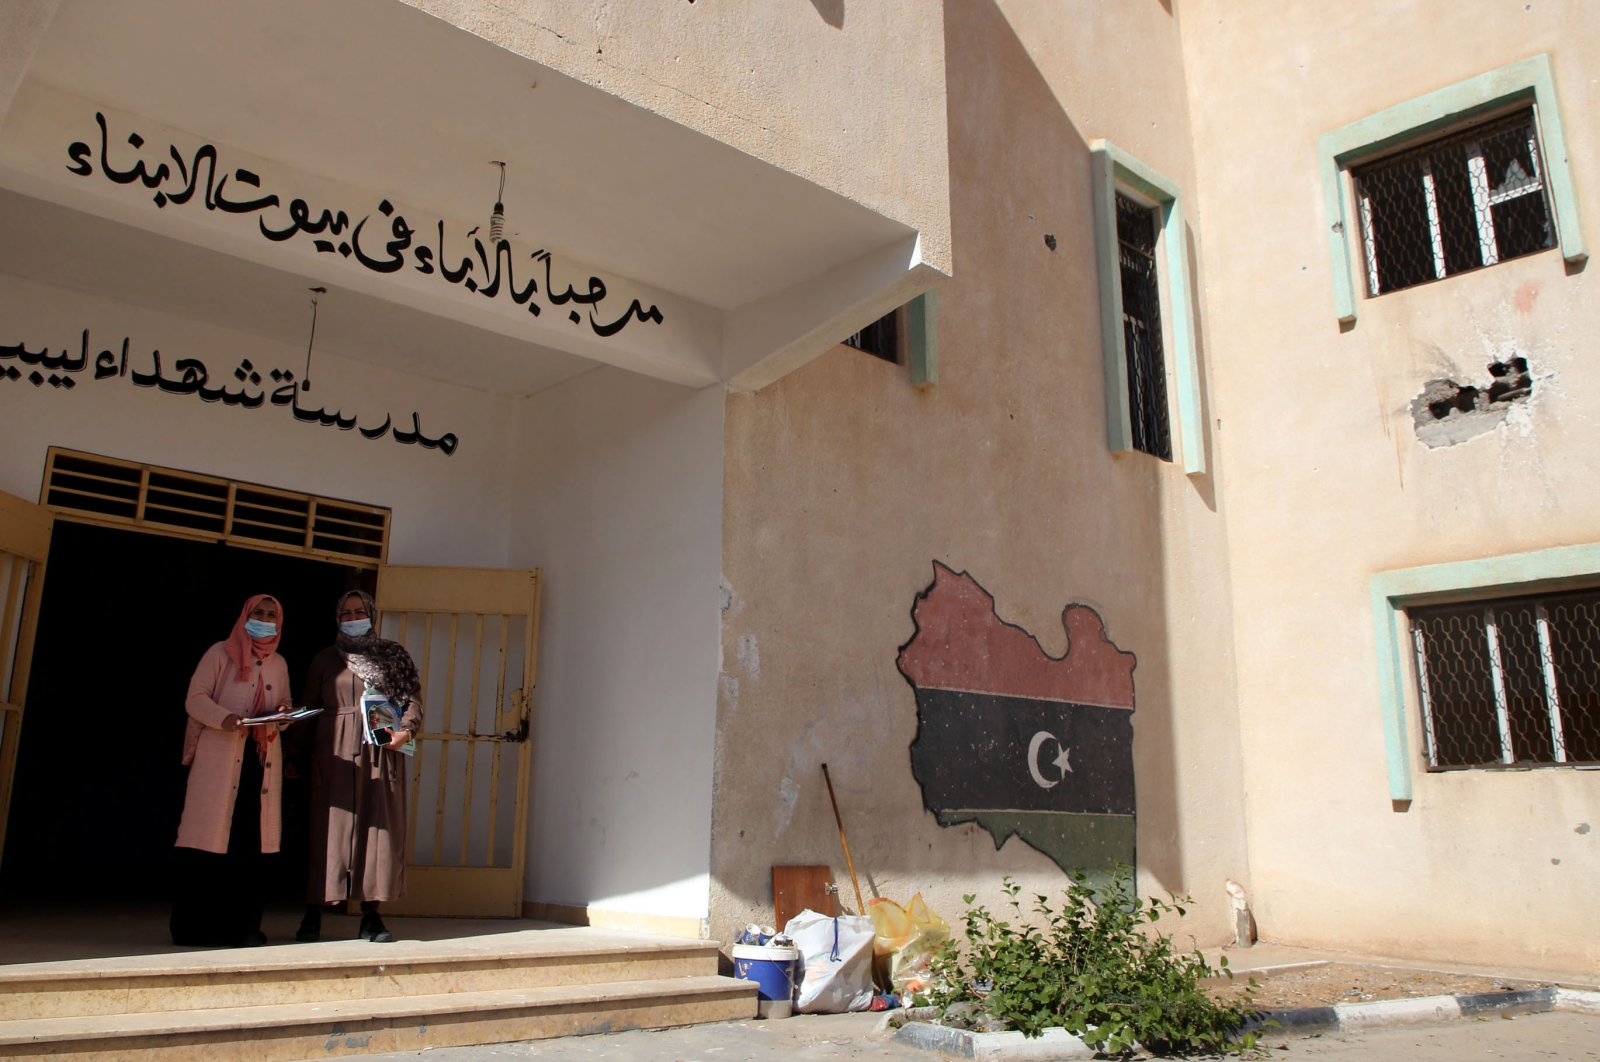 Libyan volunteers take part in an operation championed by parents and teachers to renovate the Martyrs' School, which was damaged during fighting between rival factions, in the capital Tripoli's suburb of Ain Zara, Libya, Nov. 19, 2020. (AFP Photo)